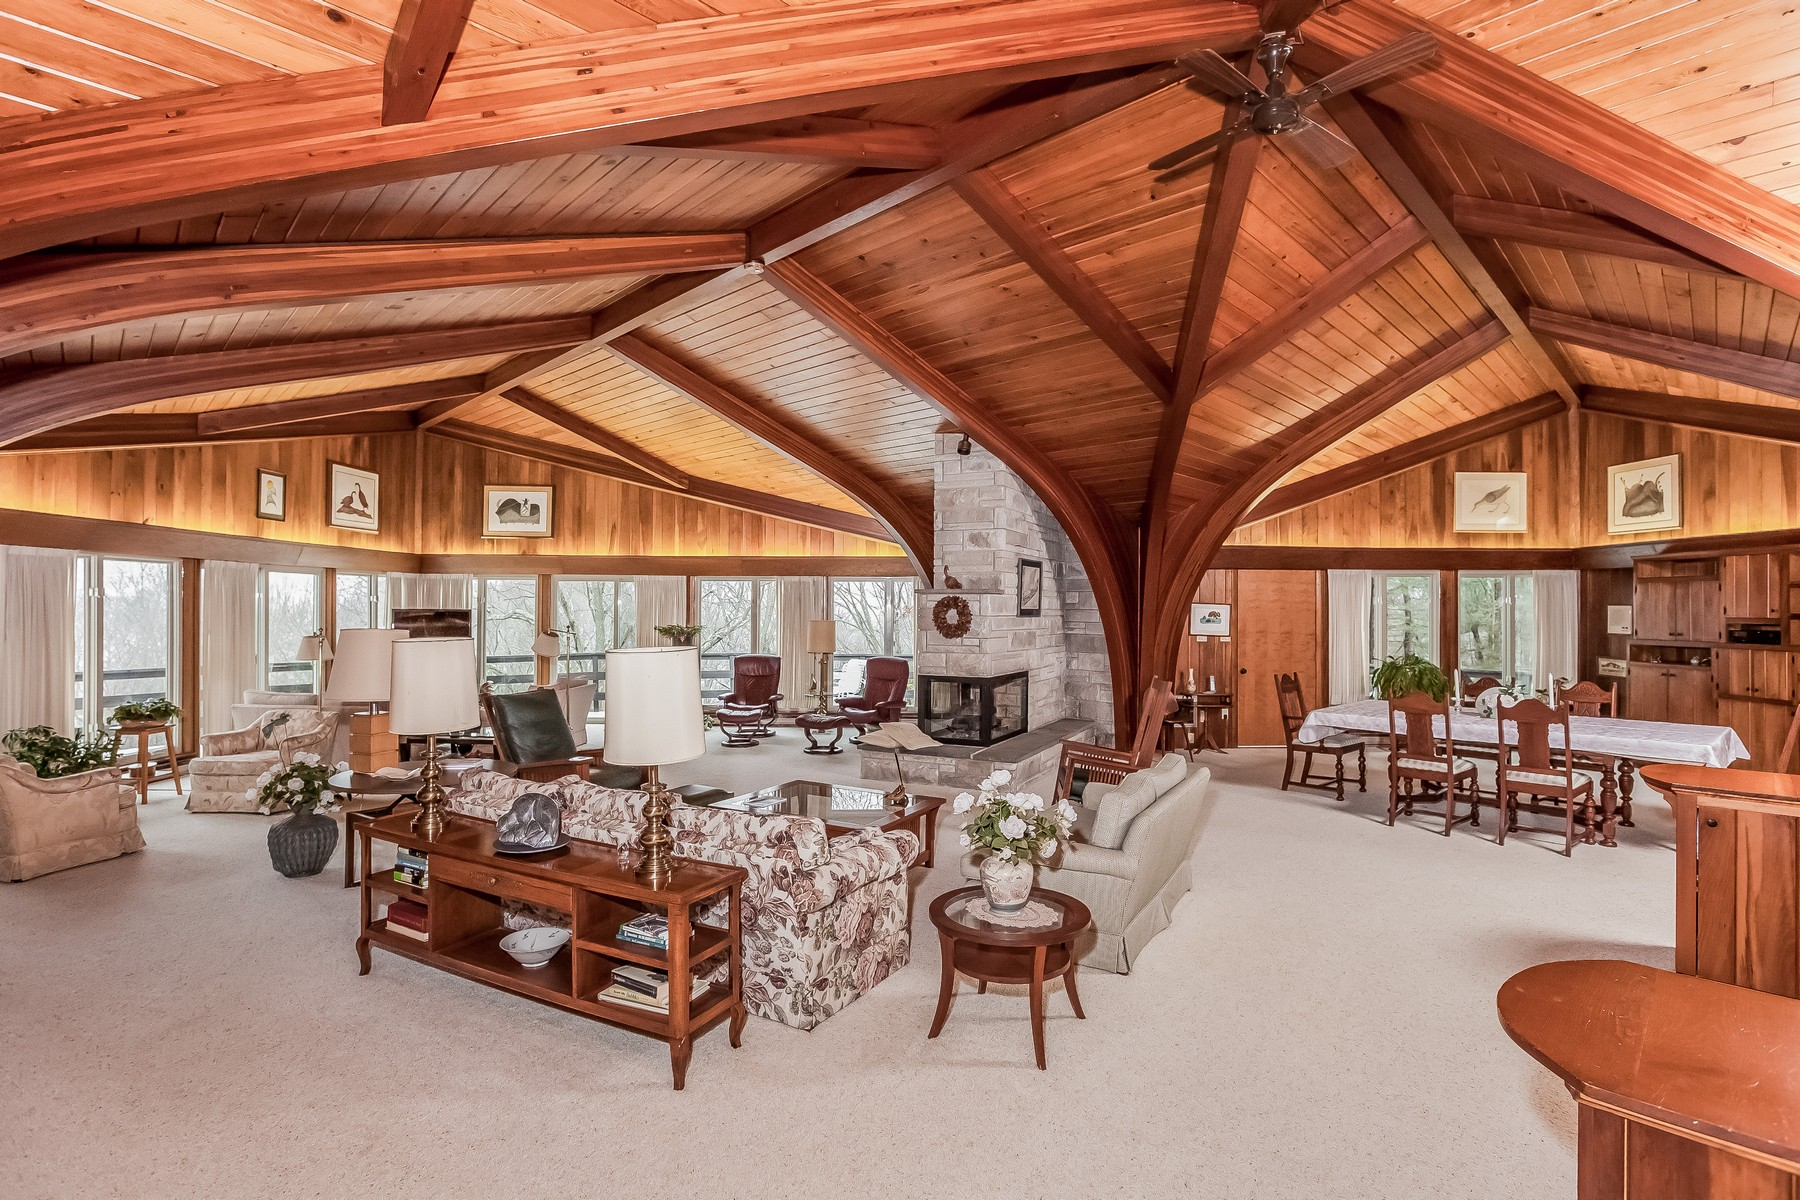 Single Family Home for Sale at Dramatic Mid Century Contemporary 35 Hurlbutt Rd Ledyard, Connecticut 06335 United States